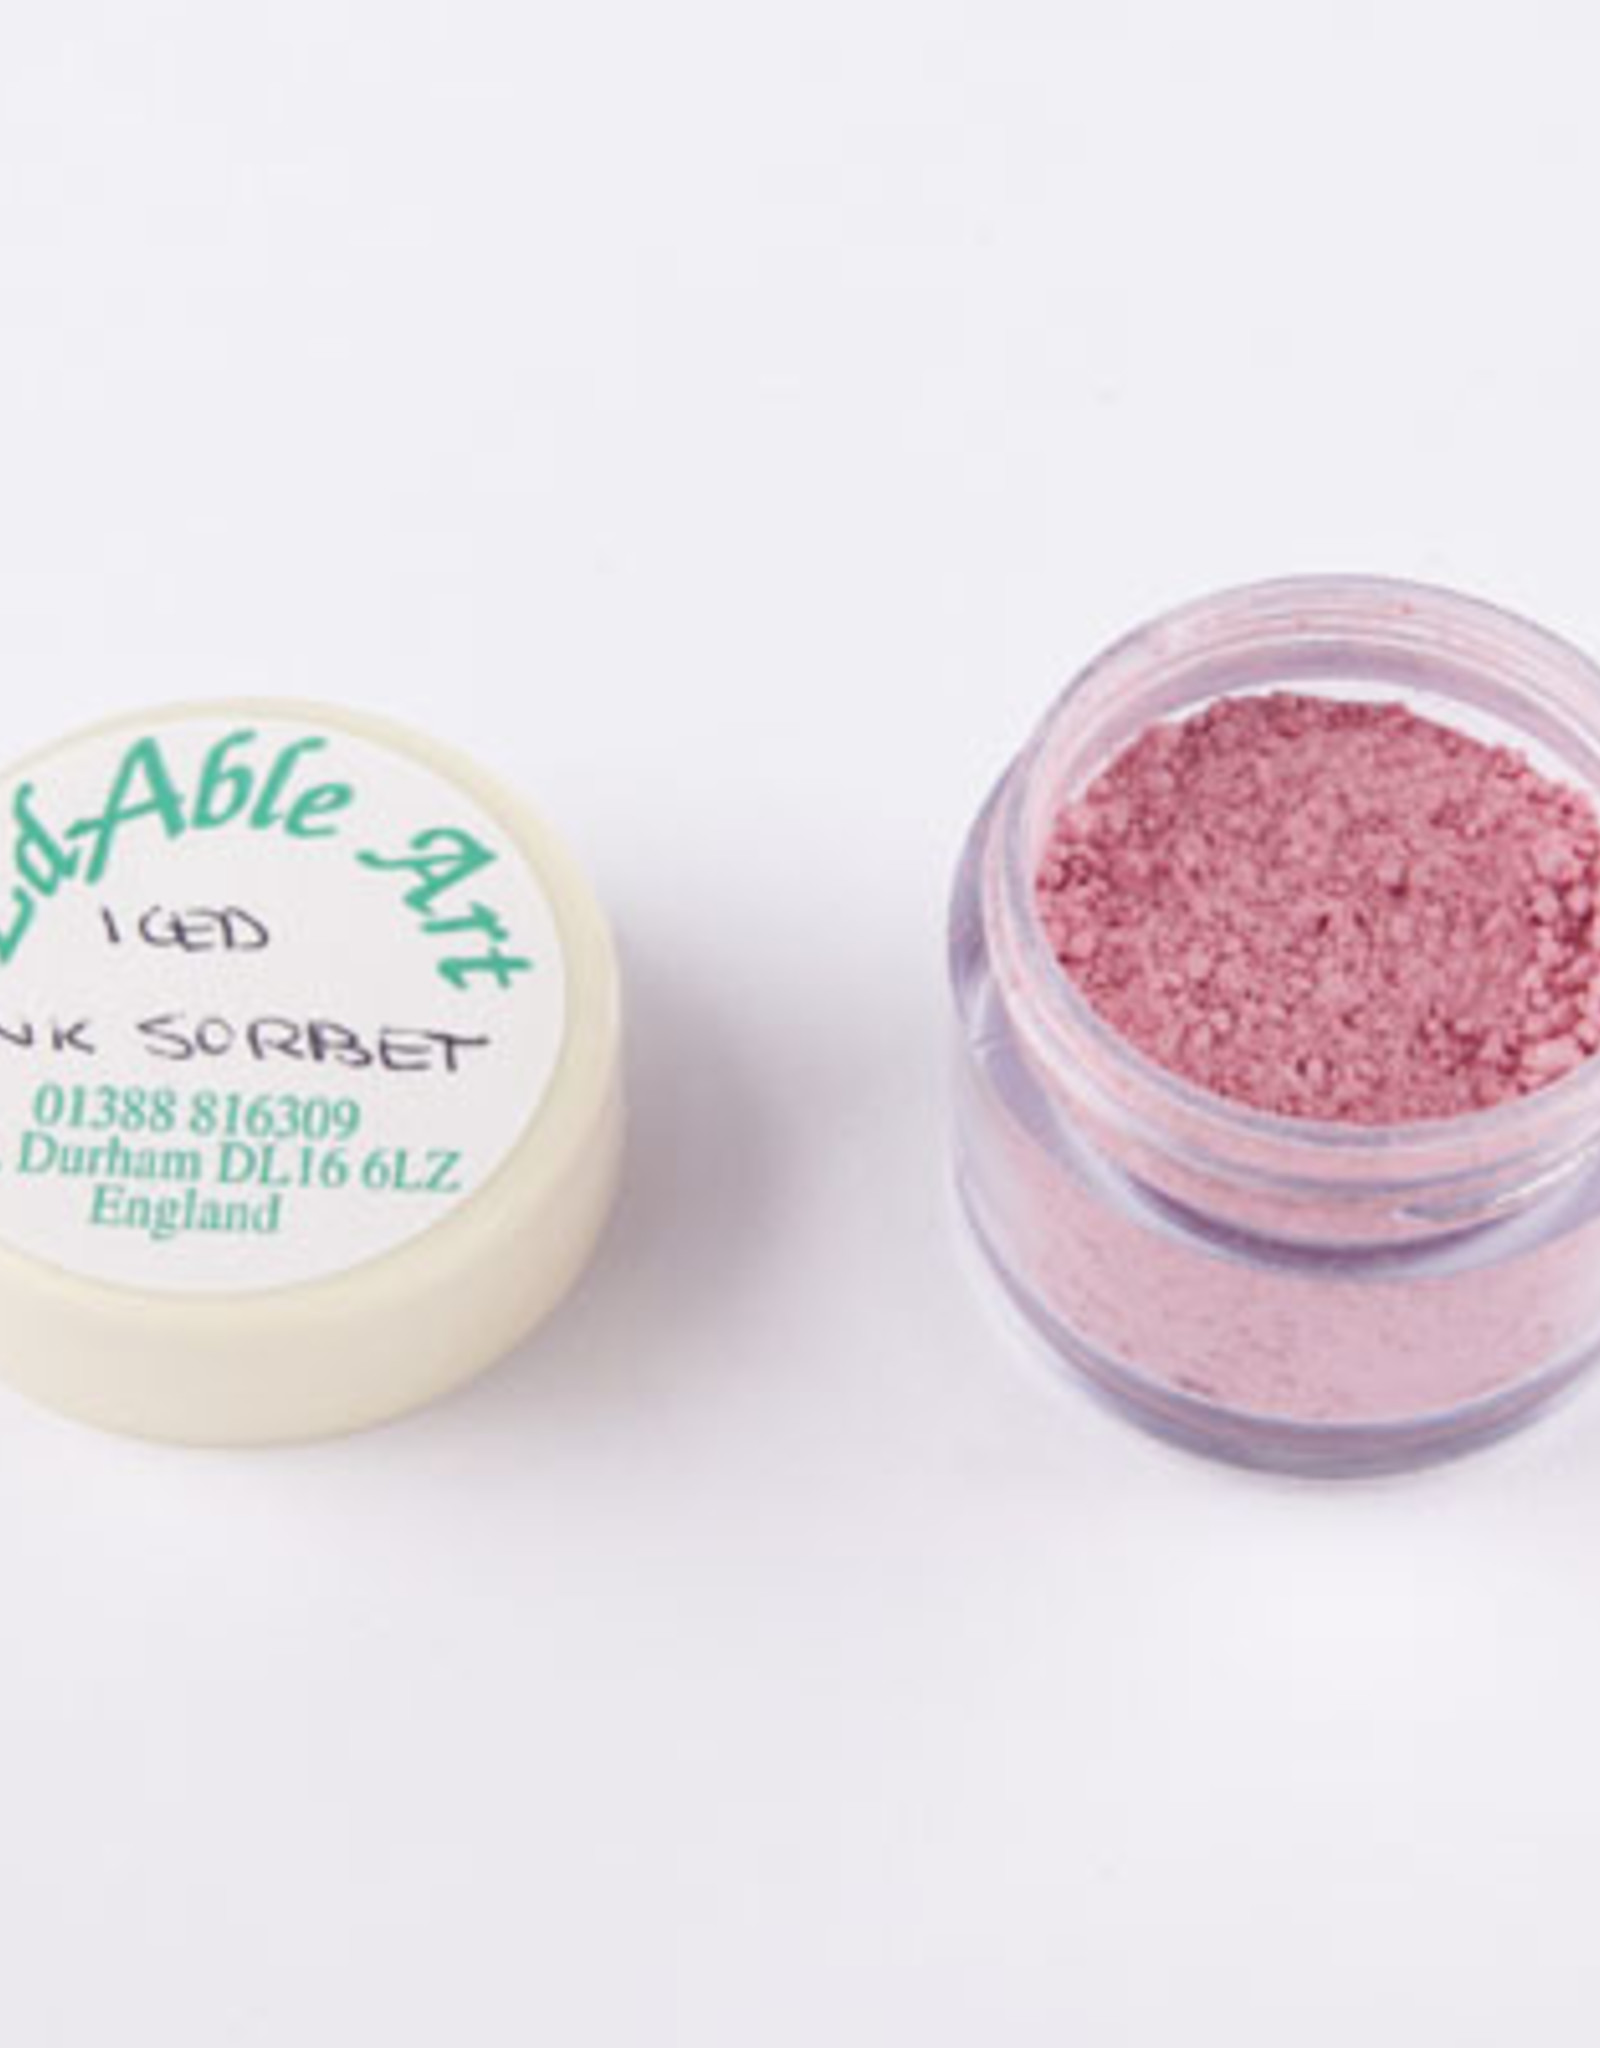 EdAble Art EdAble Art Tints & Pearls Iced Pink Sorbet